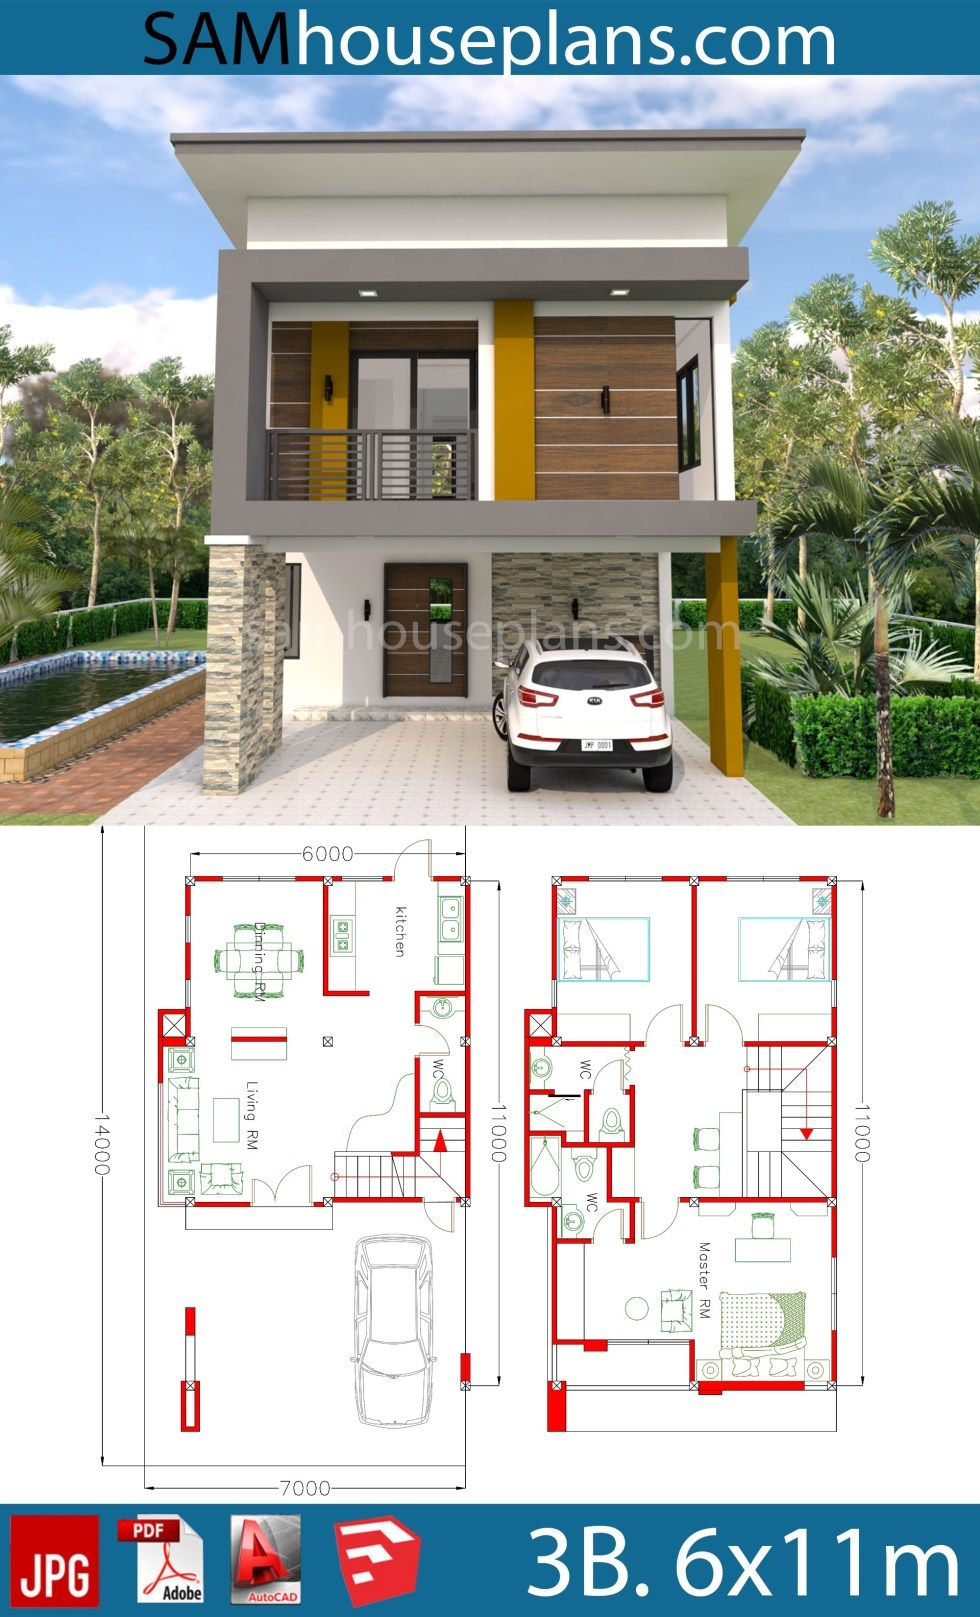 House Plans 6x11m With 3 Bedrooms With Images Narrow House Plans Duplex House Plans